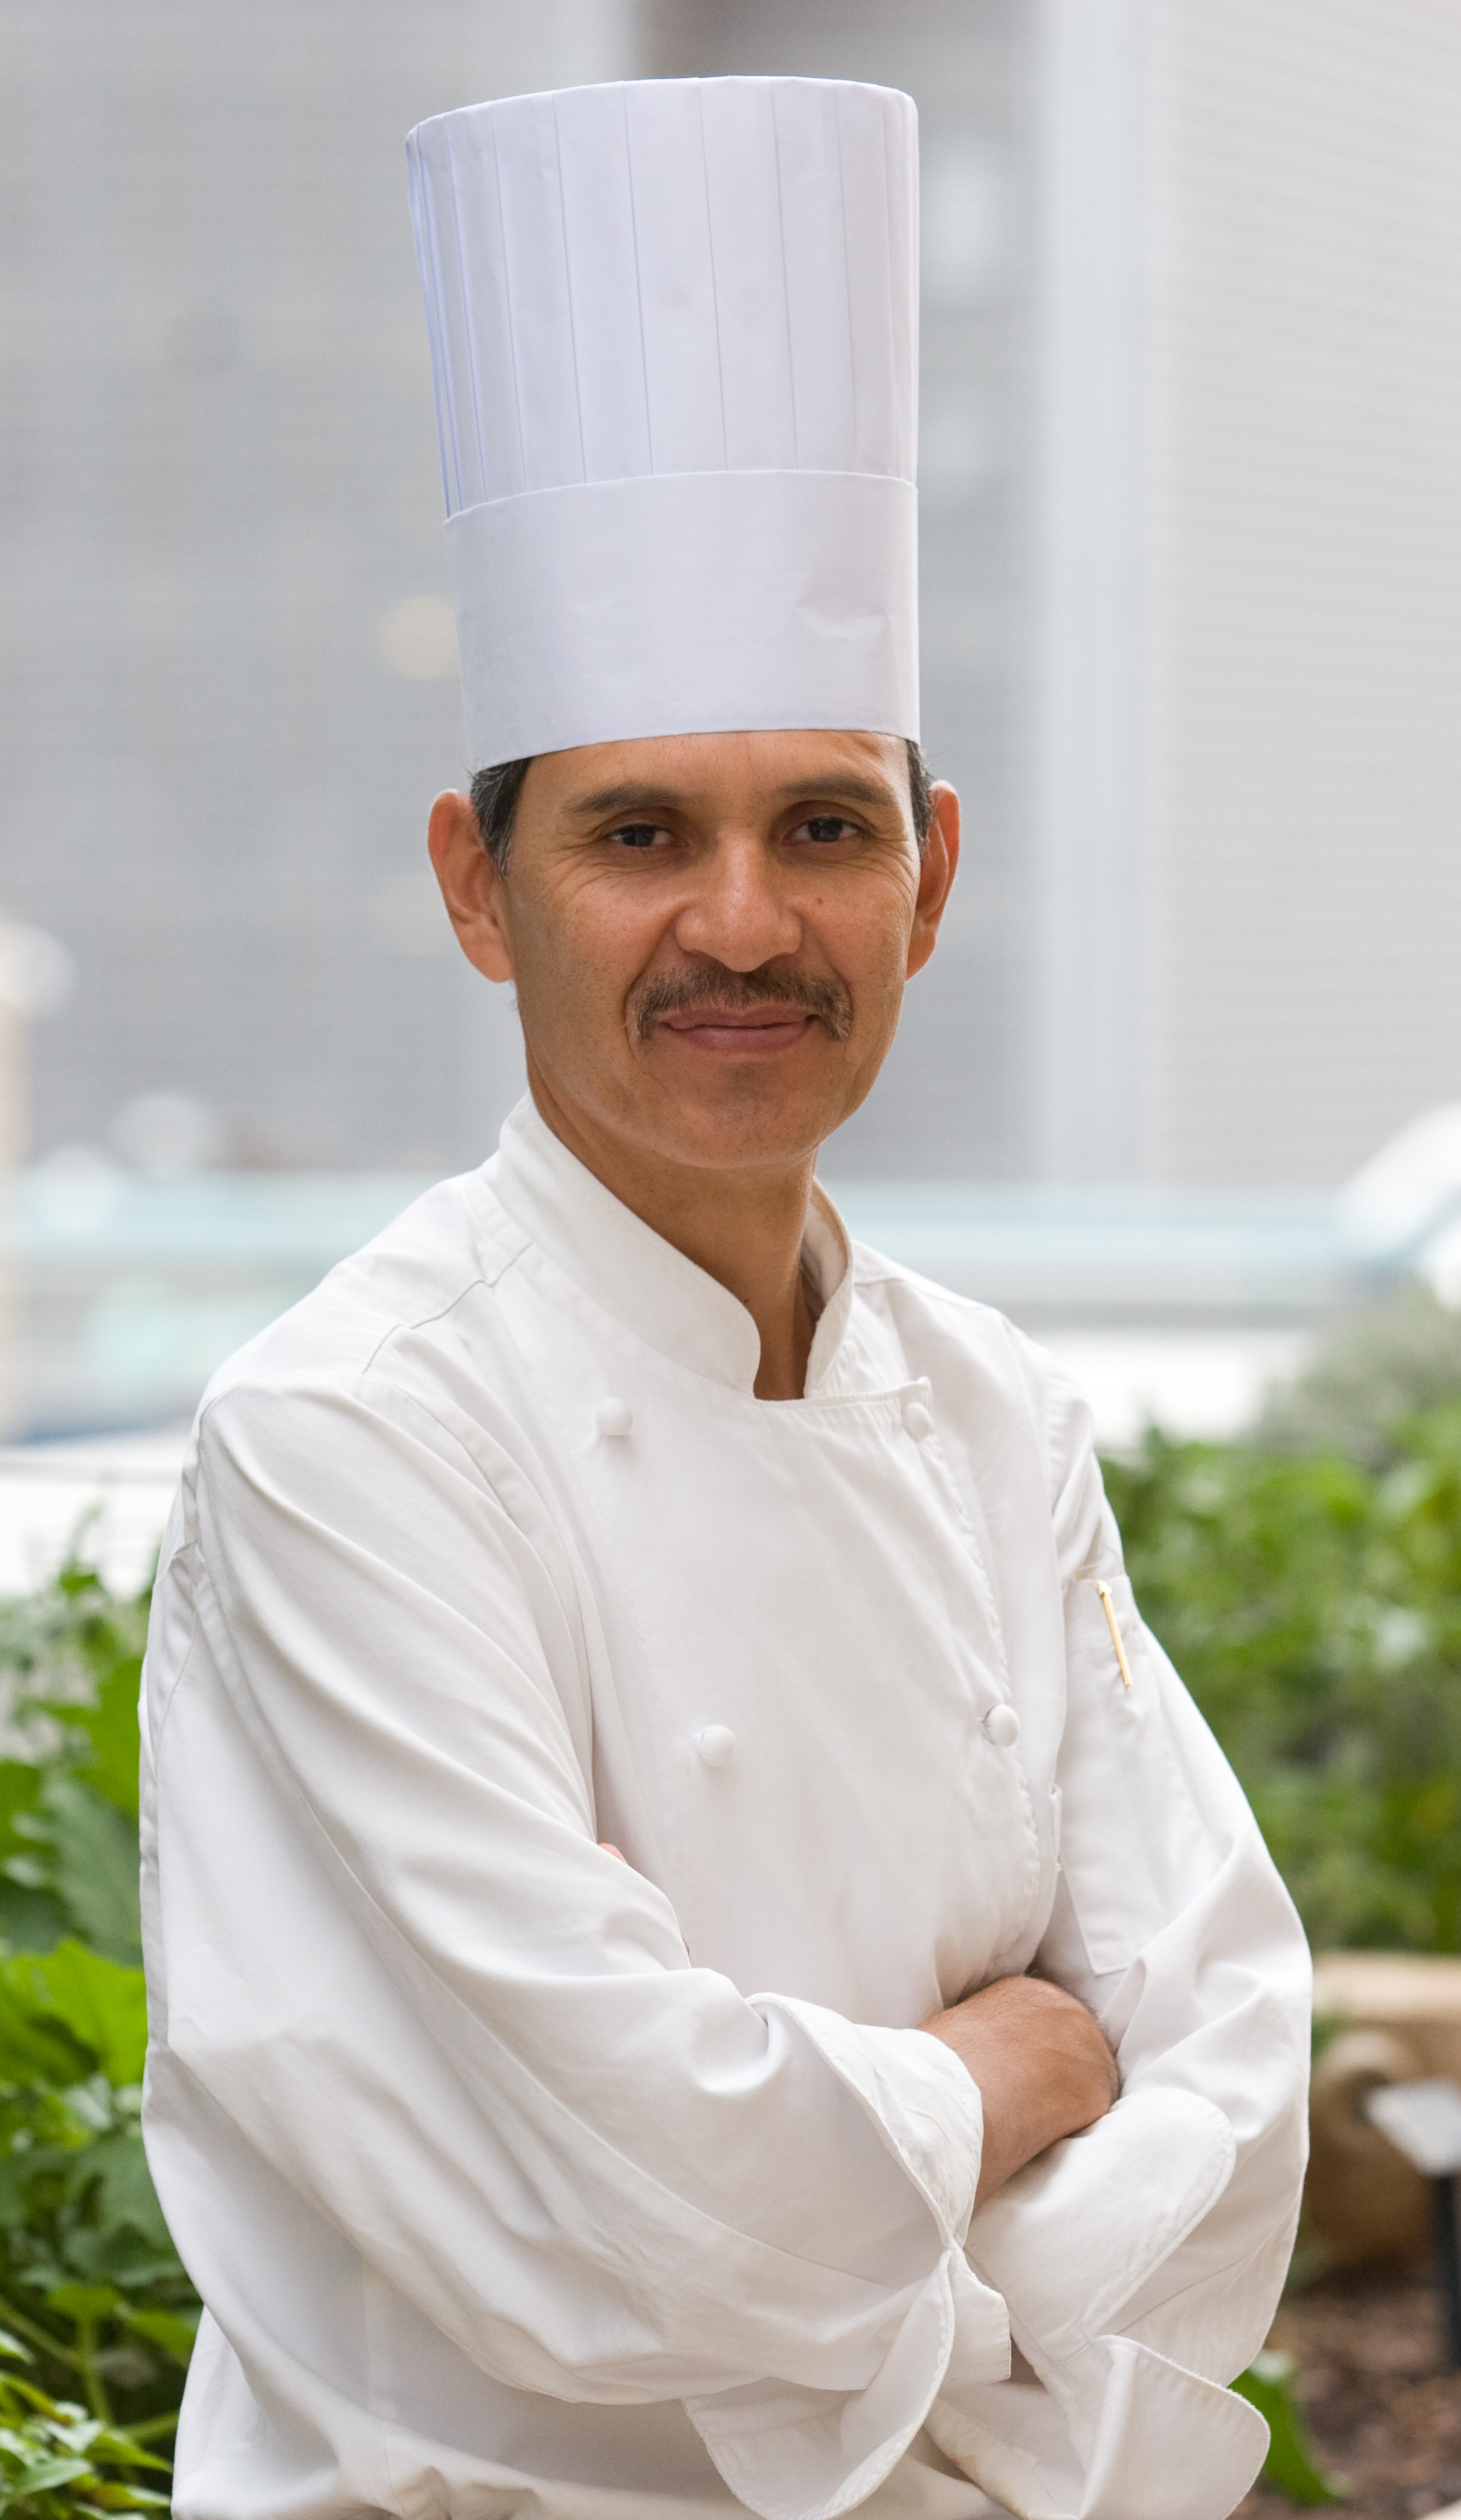 Sheraton Phoenix Downtown Hotel Hires New Executive Chef